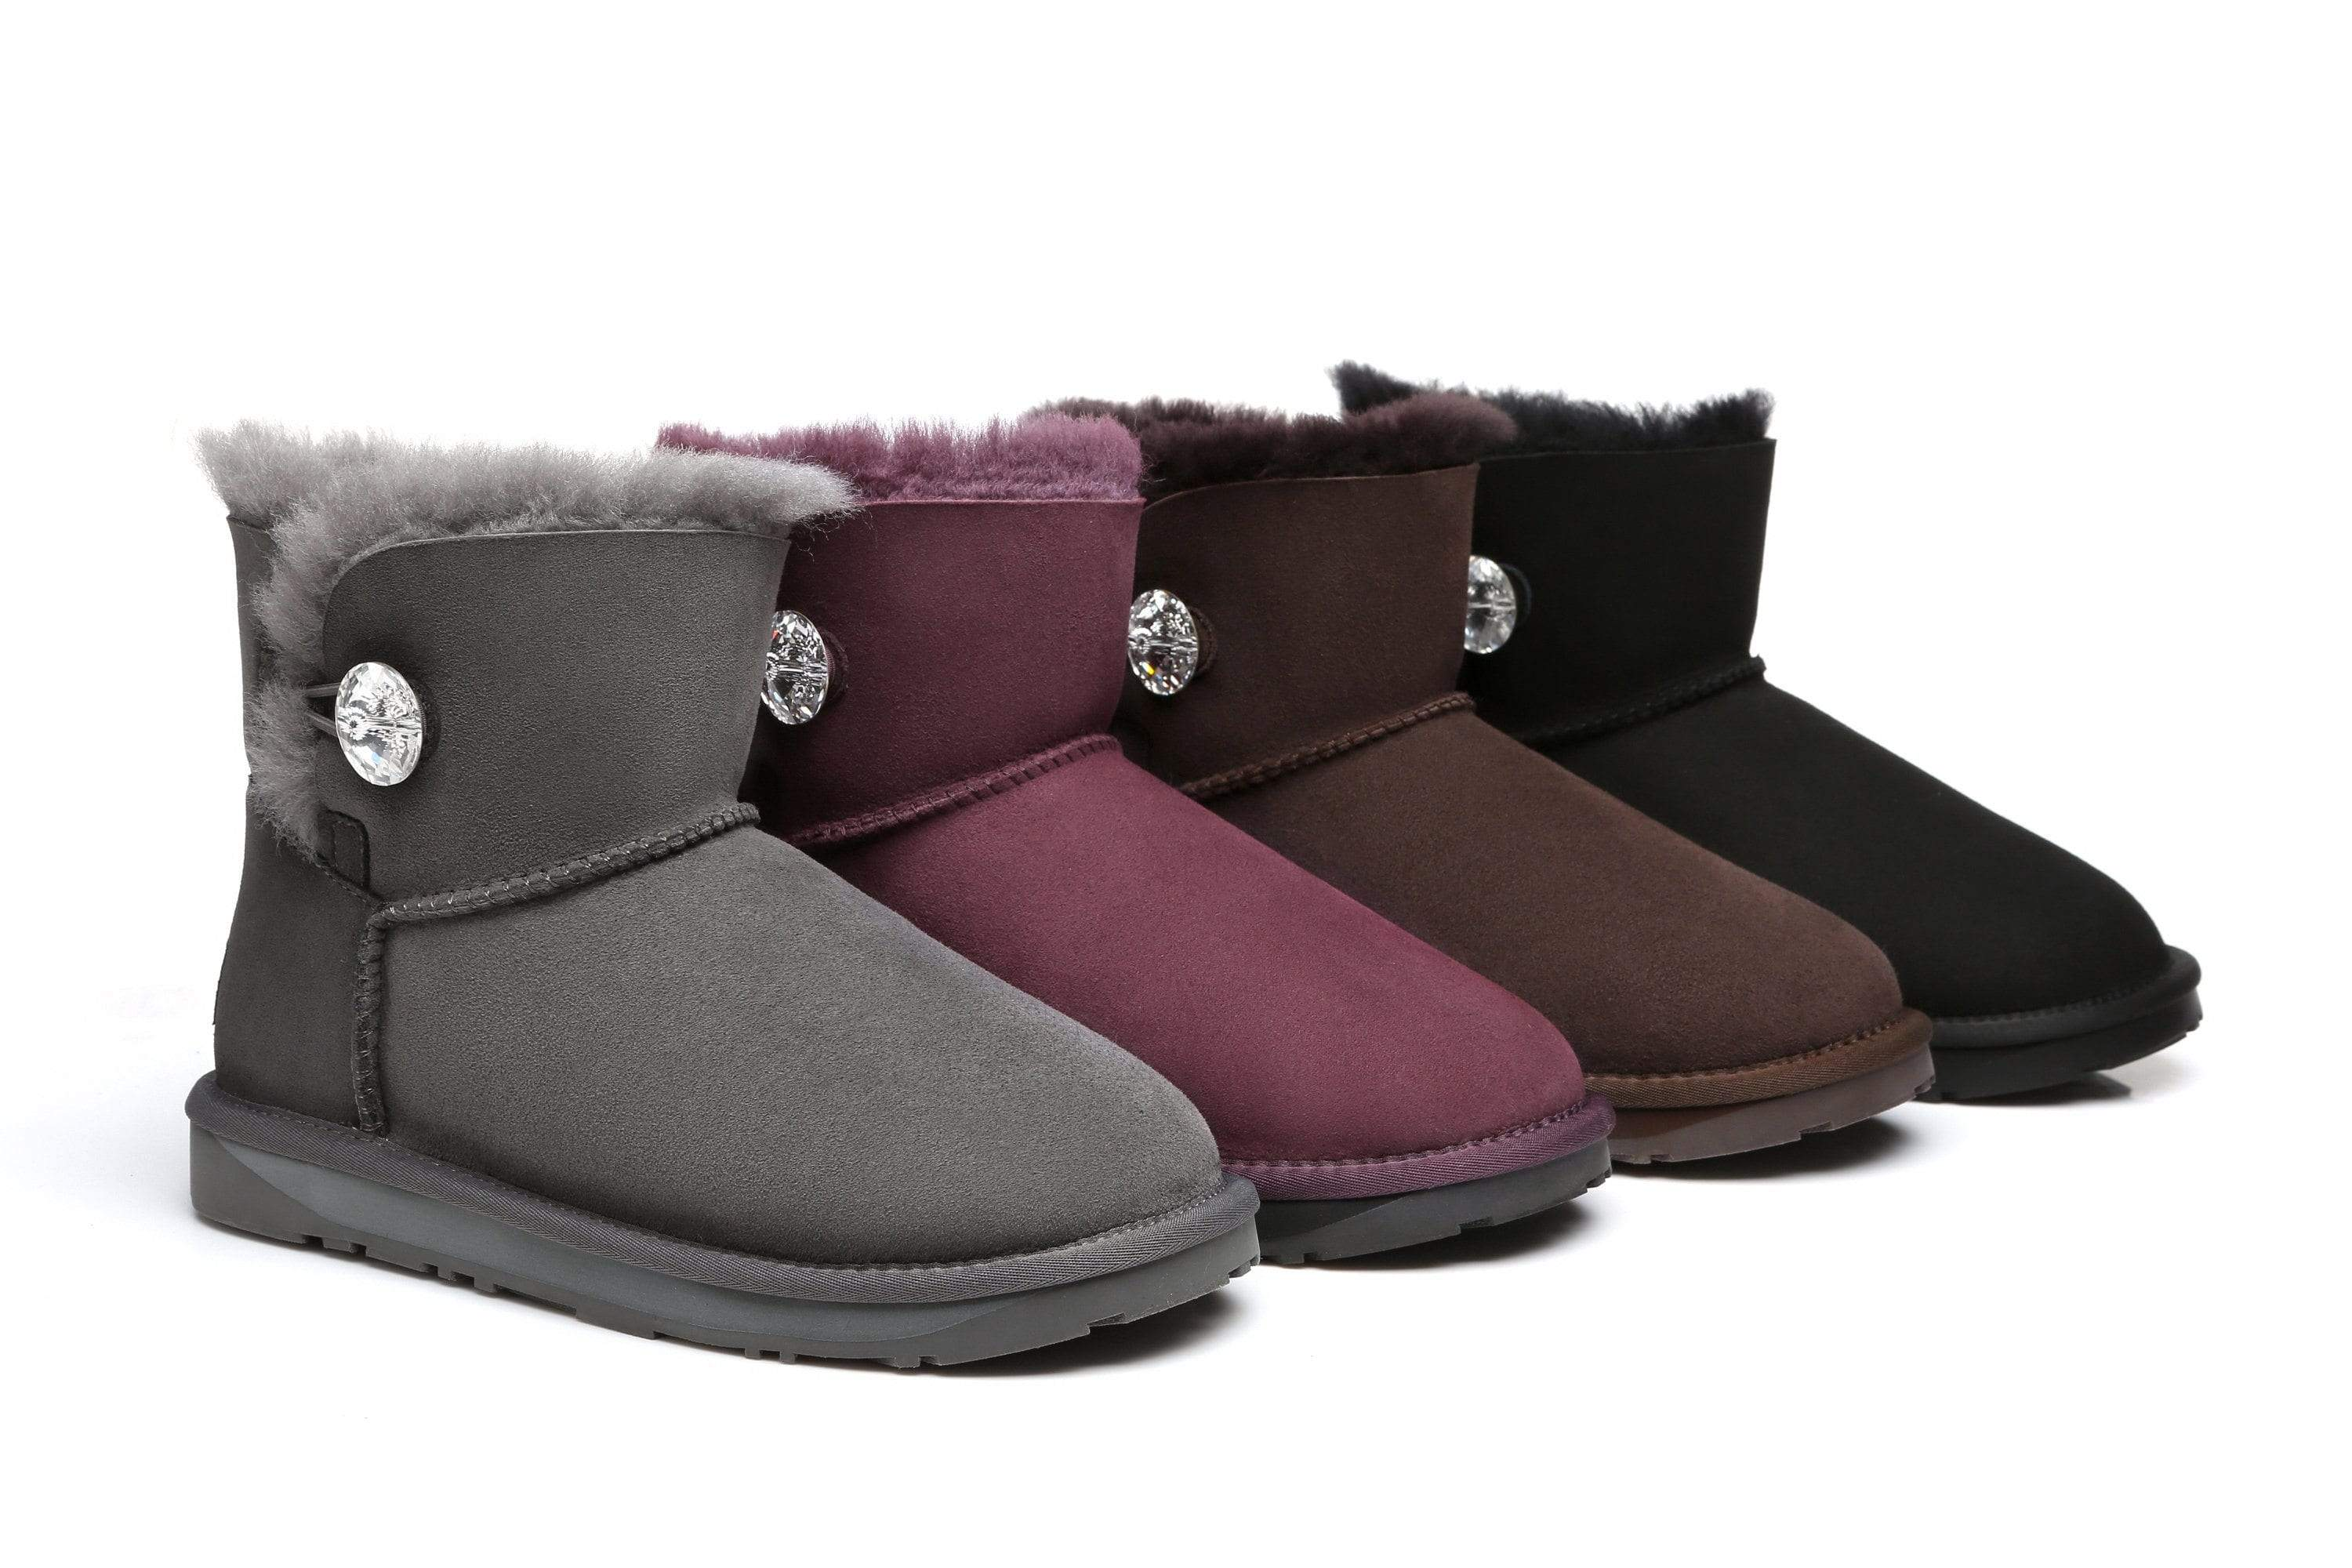 66d662ede14 Ever UGG Mini Button Boots with Crystal #11751- Clearance Sale